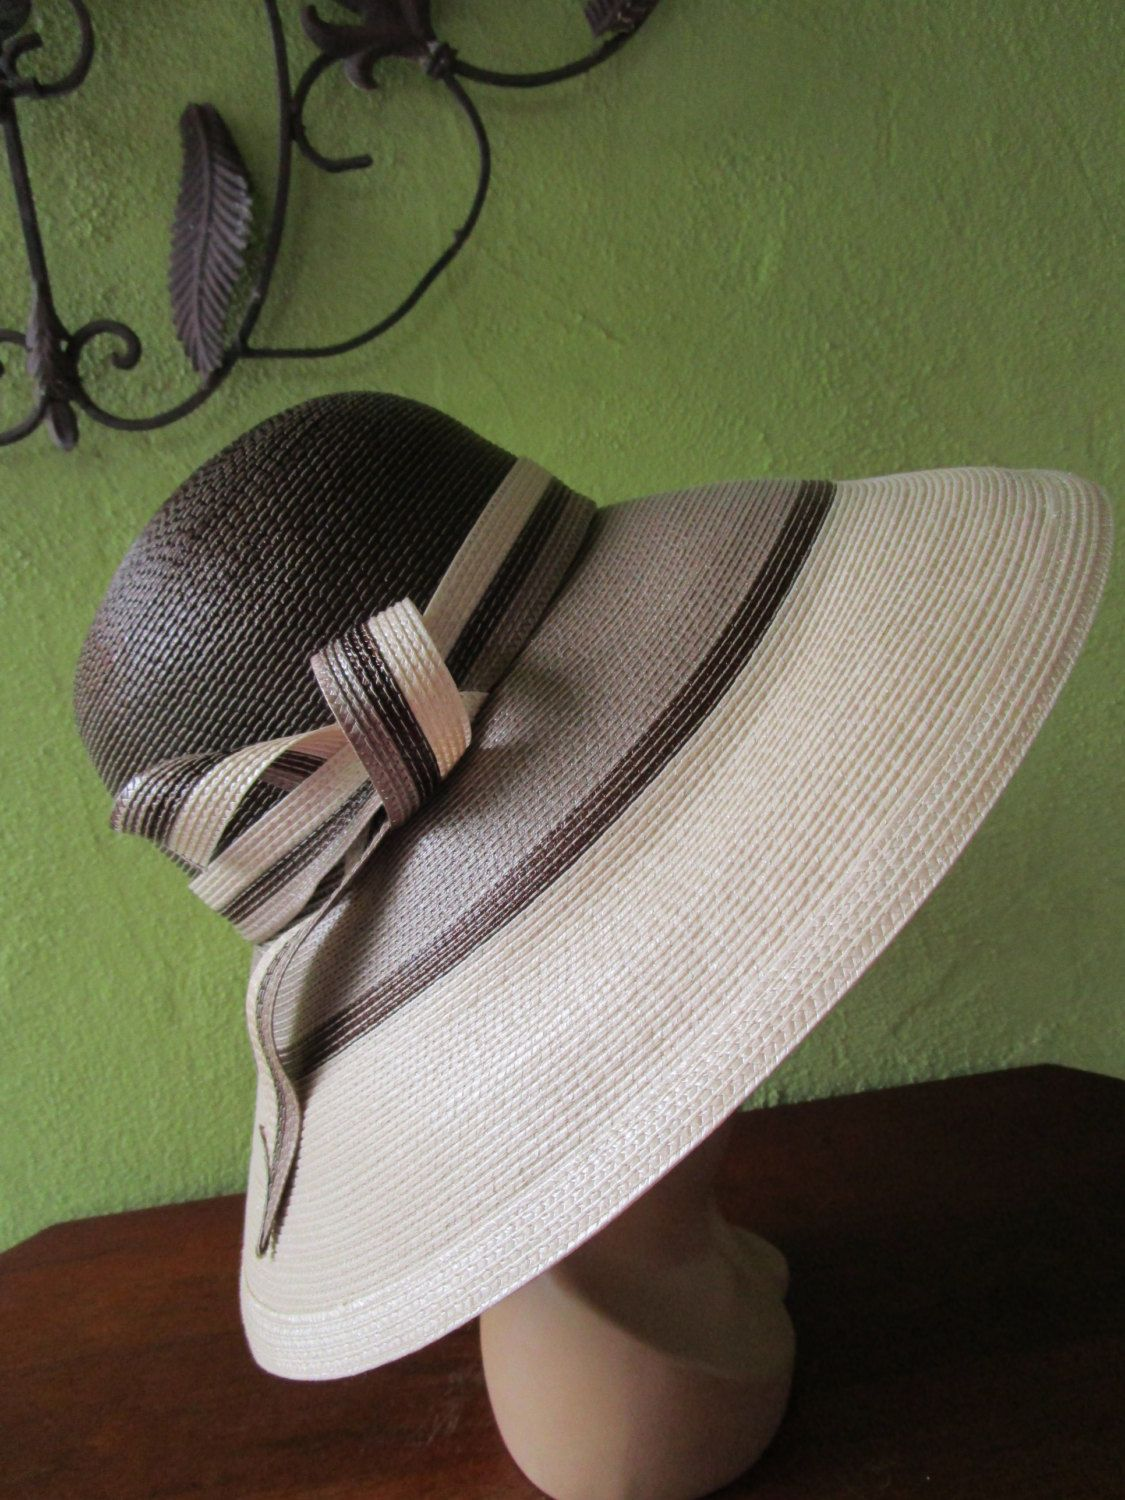 f1cba3d03b3 Marzi Italy Neiman Marcus Straw Hat Ombre Natural Brown Sun Derby Church  Easter by FabulousVintageHats on Etsy